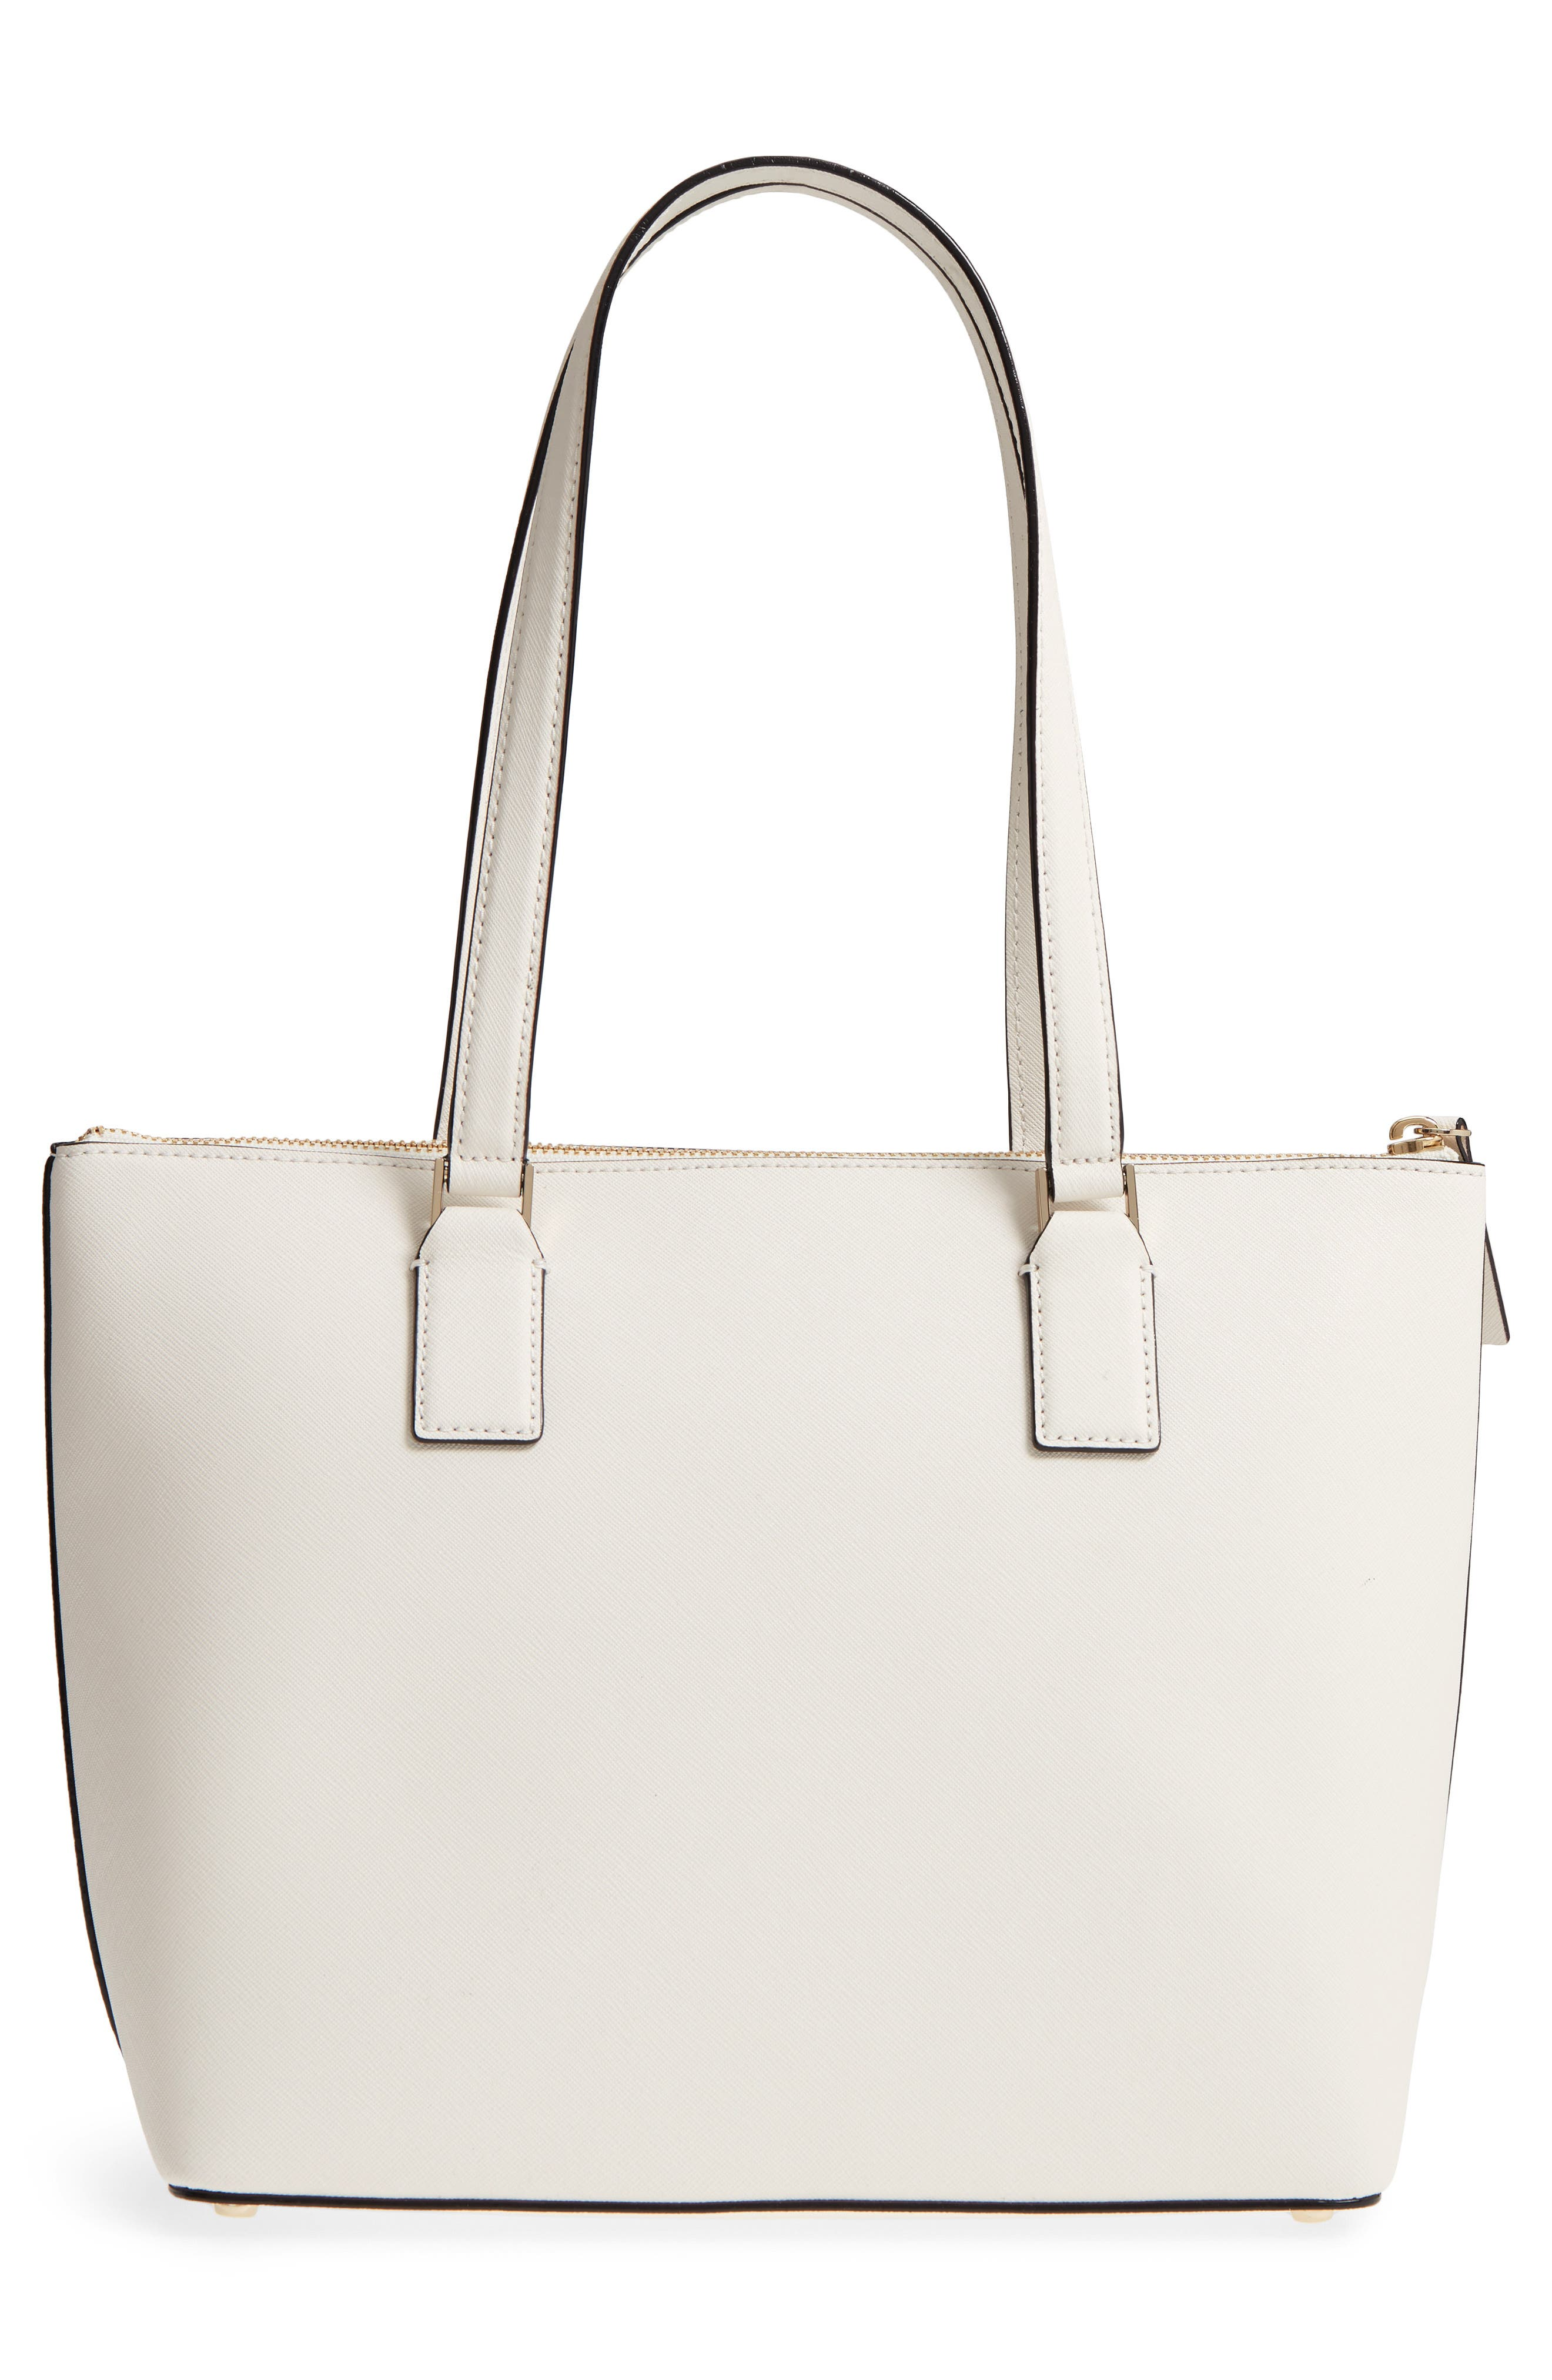 cameron street - small lucie leather tote,                             Alternate thumbnail 4, color,                             Cement